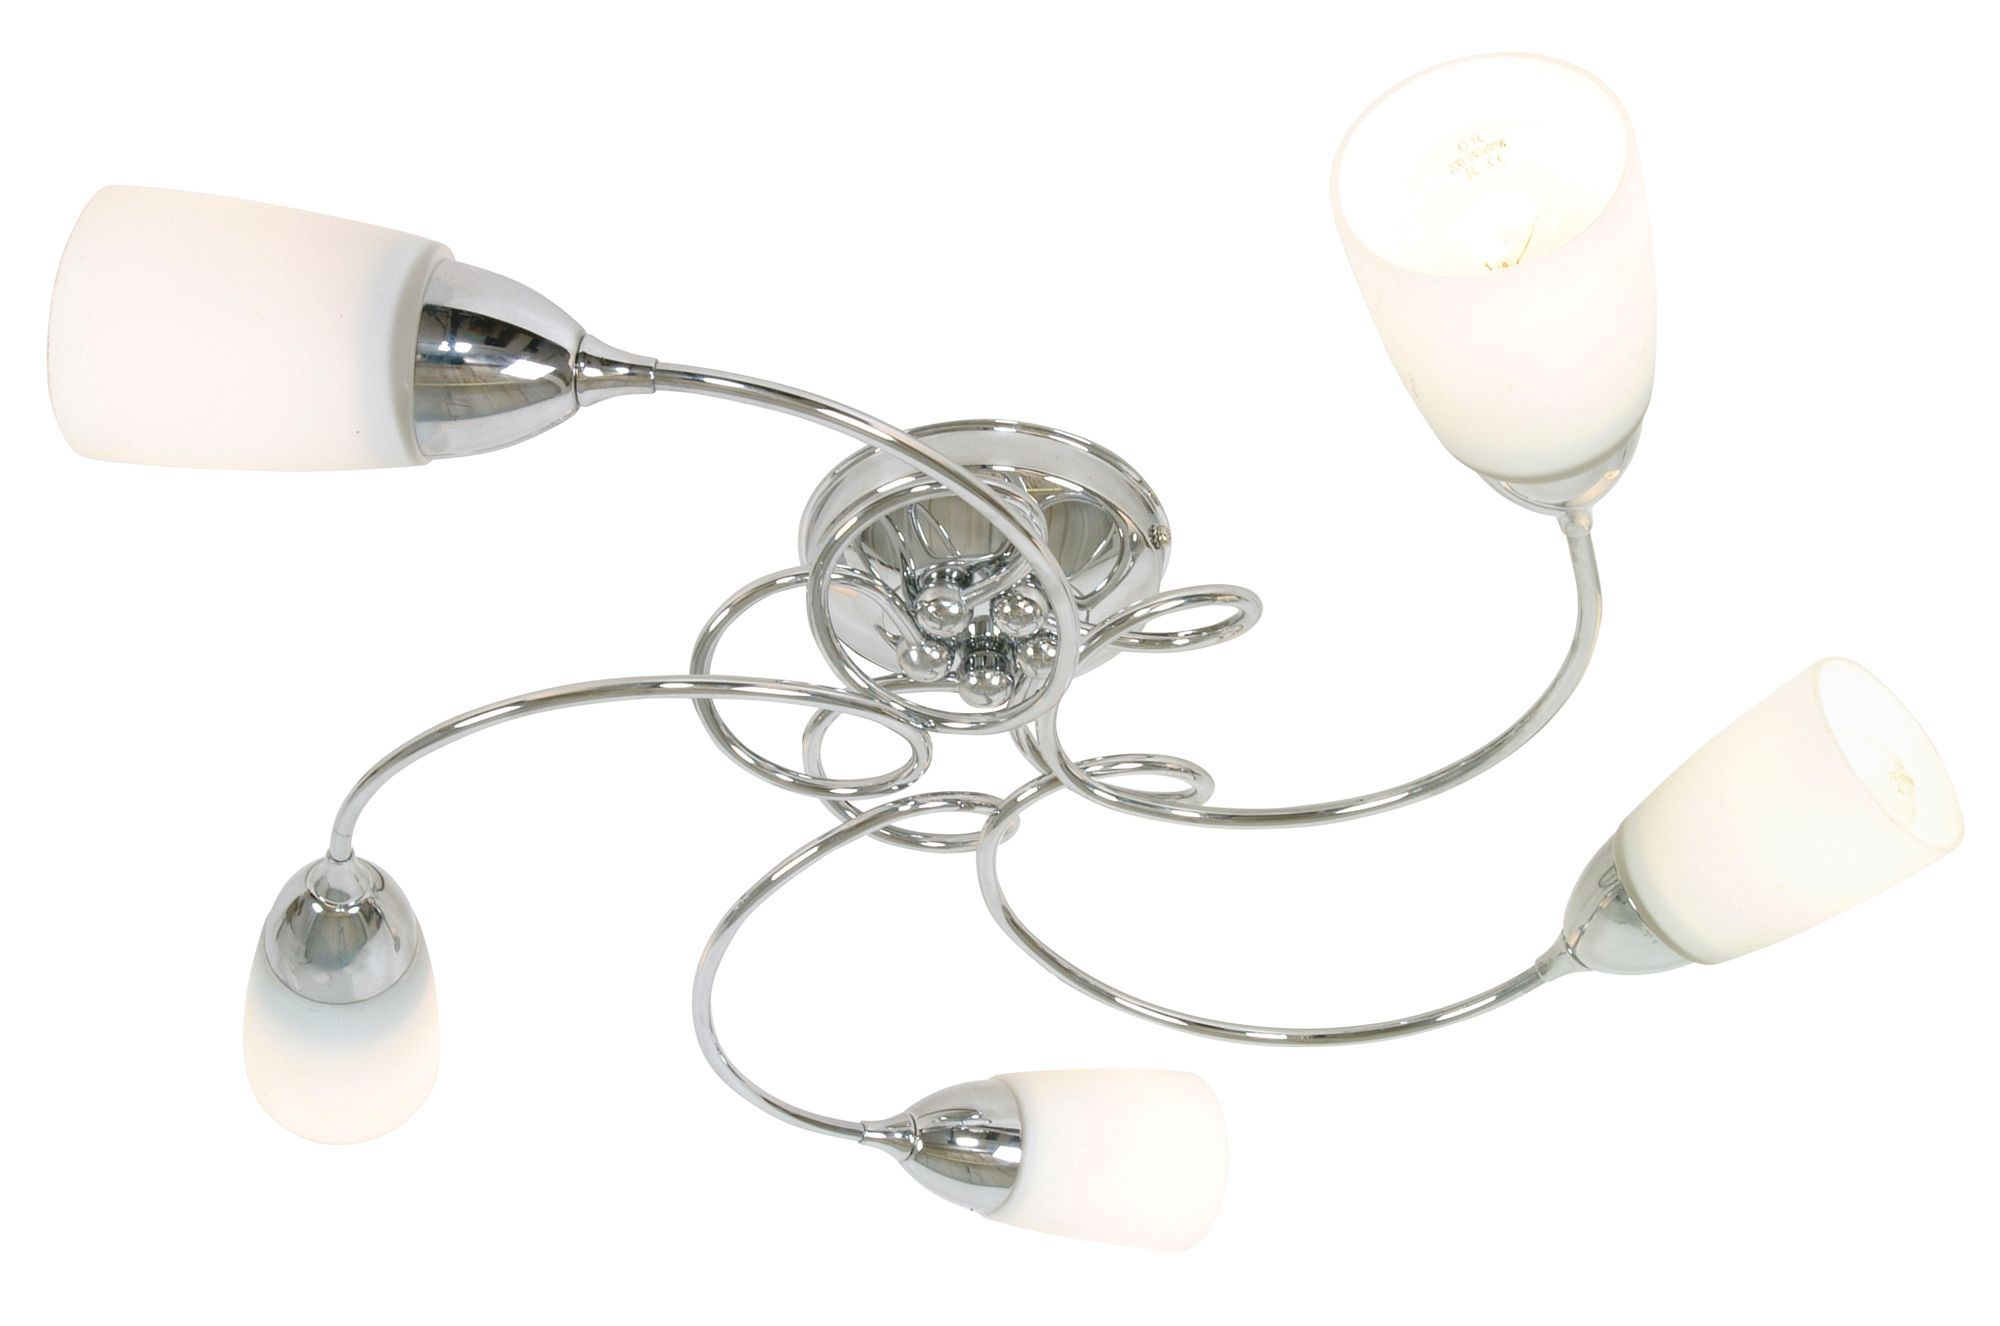 Vortex chrome effect 5 lamp ceiling light departments diy at bq aloadofball Image collections